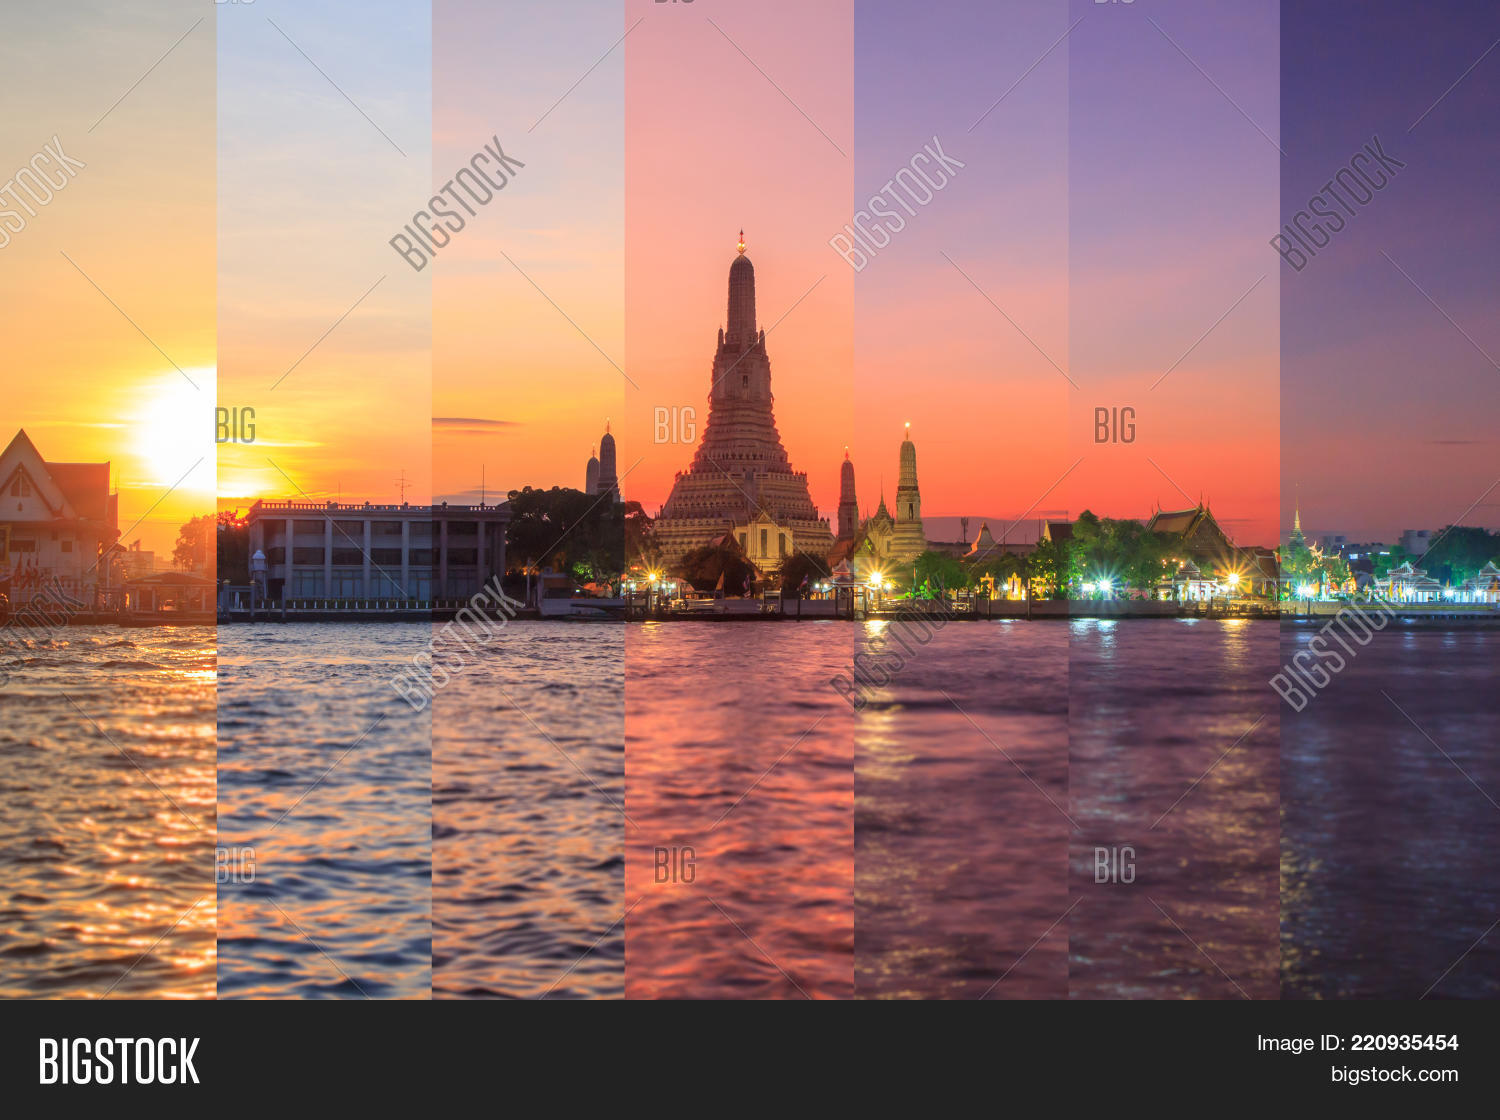 Different Shade Color Image & Photo (Free Trial) | Bigstock